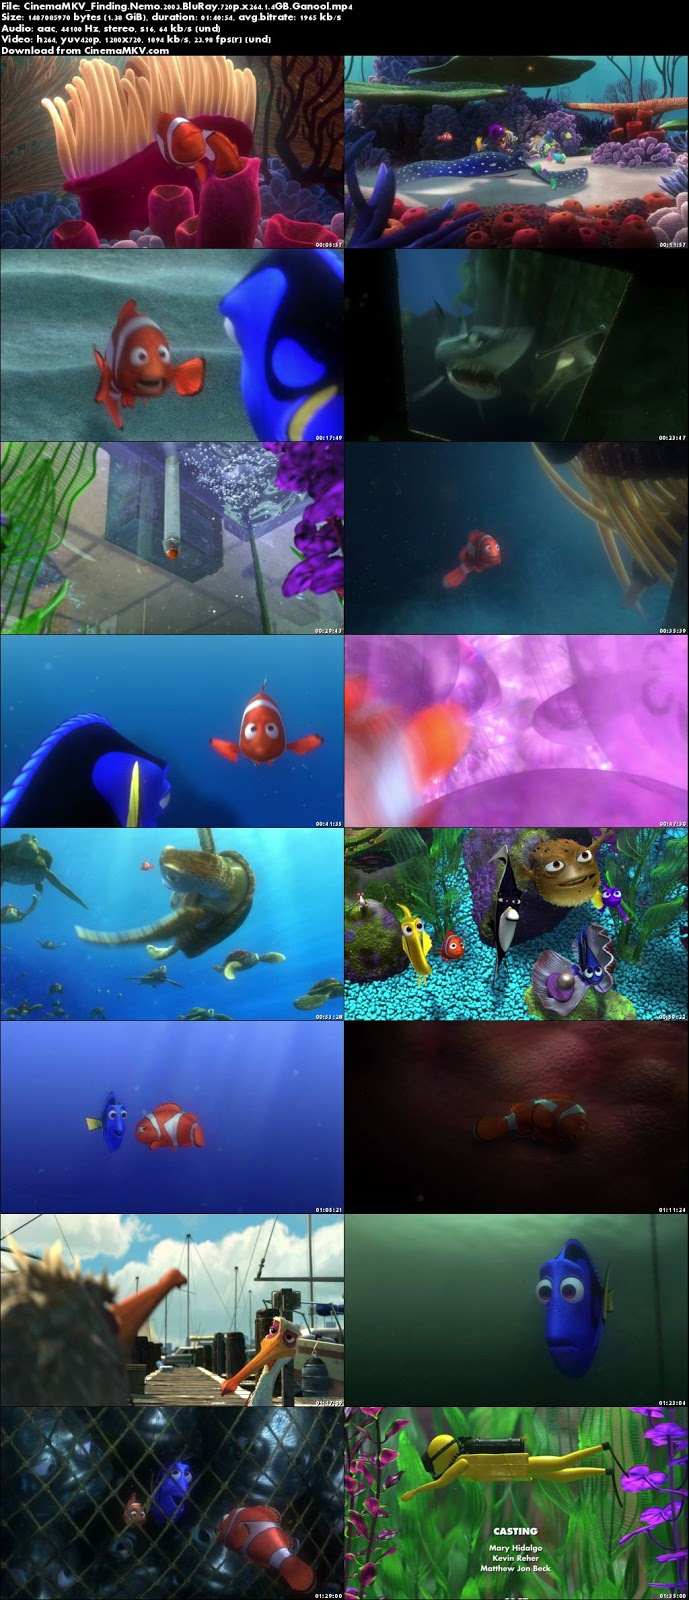 720 Credit Score >> Finding Nemo (2003) - CinemaMKV (Official) | Google Drive ...